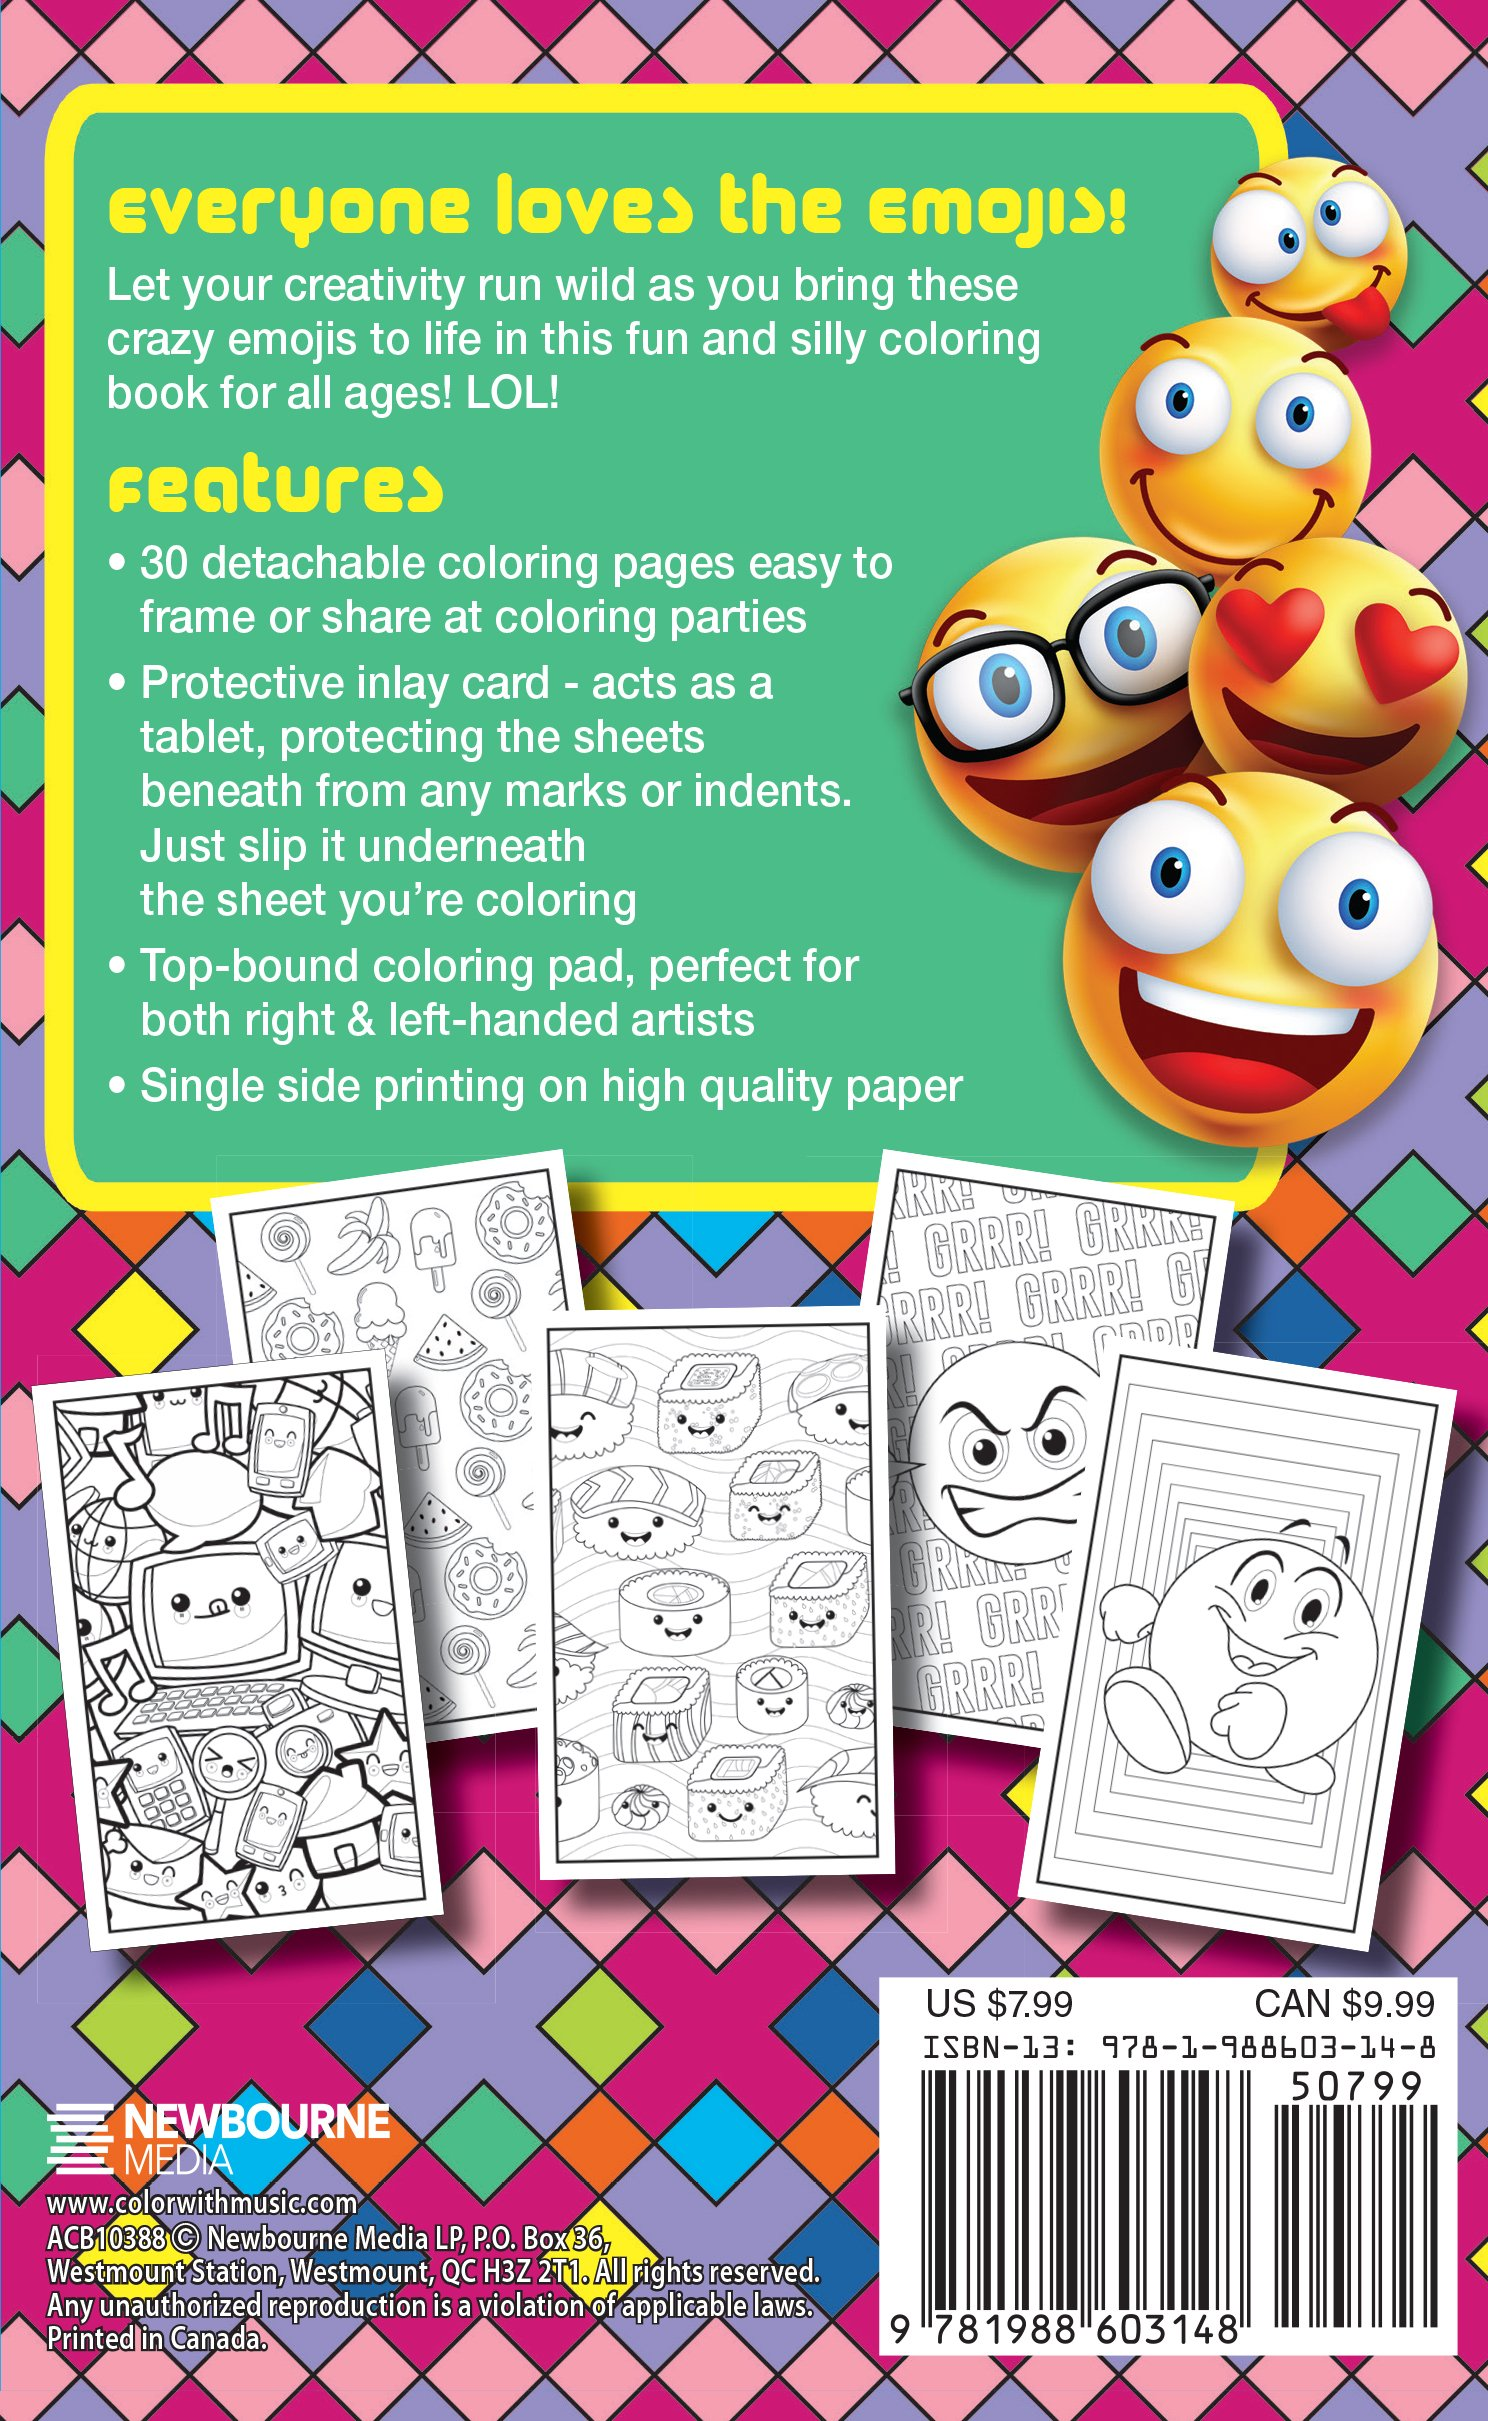 amazon com emoji crazy coloring book 30 cute fun pages for